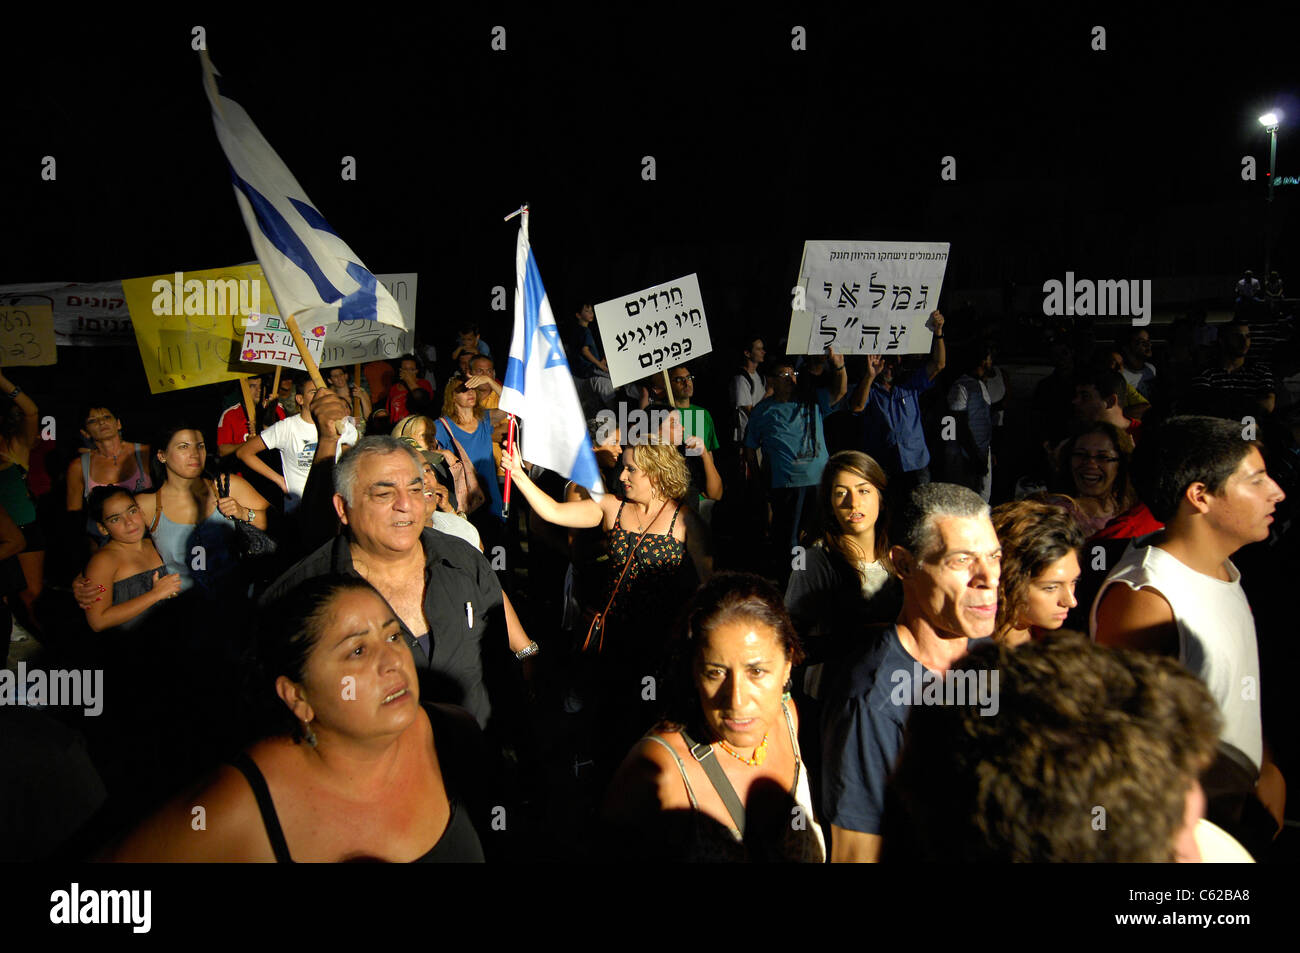 Protest March in Eilat Israel Denouncing the Cost of Living in the Country - Stock Image